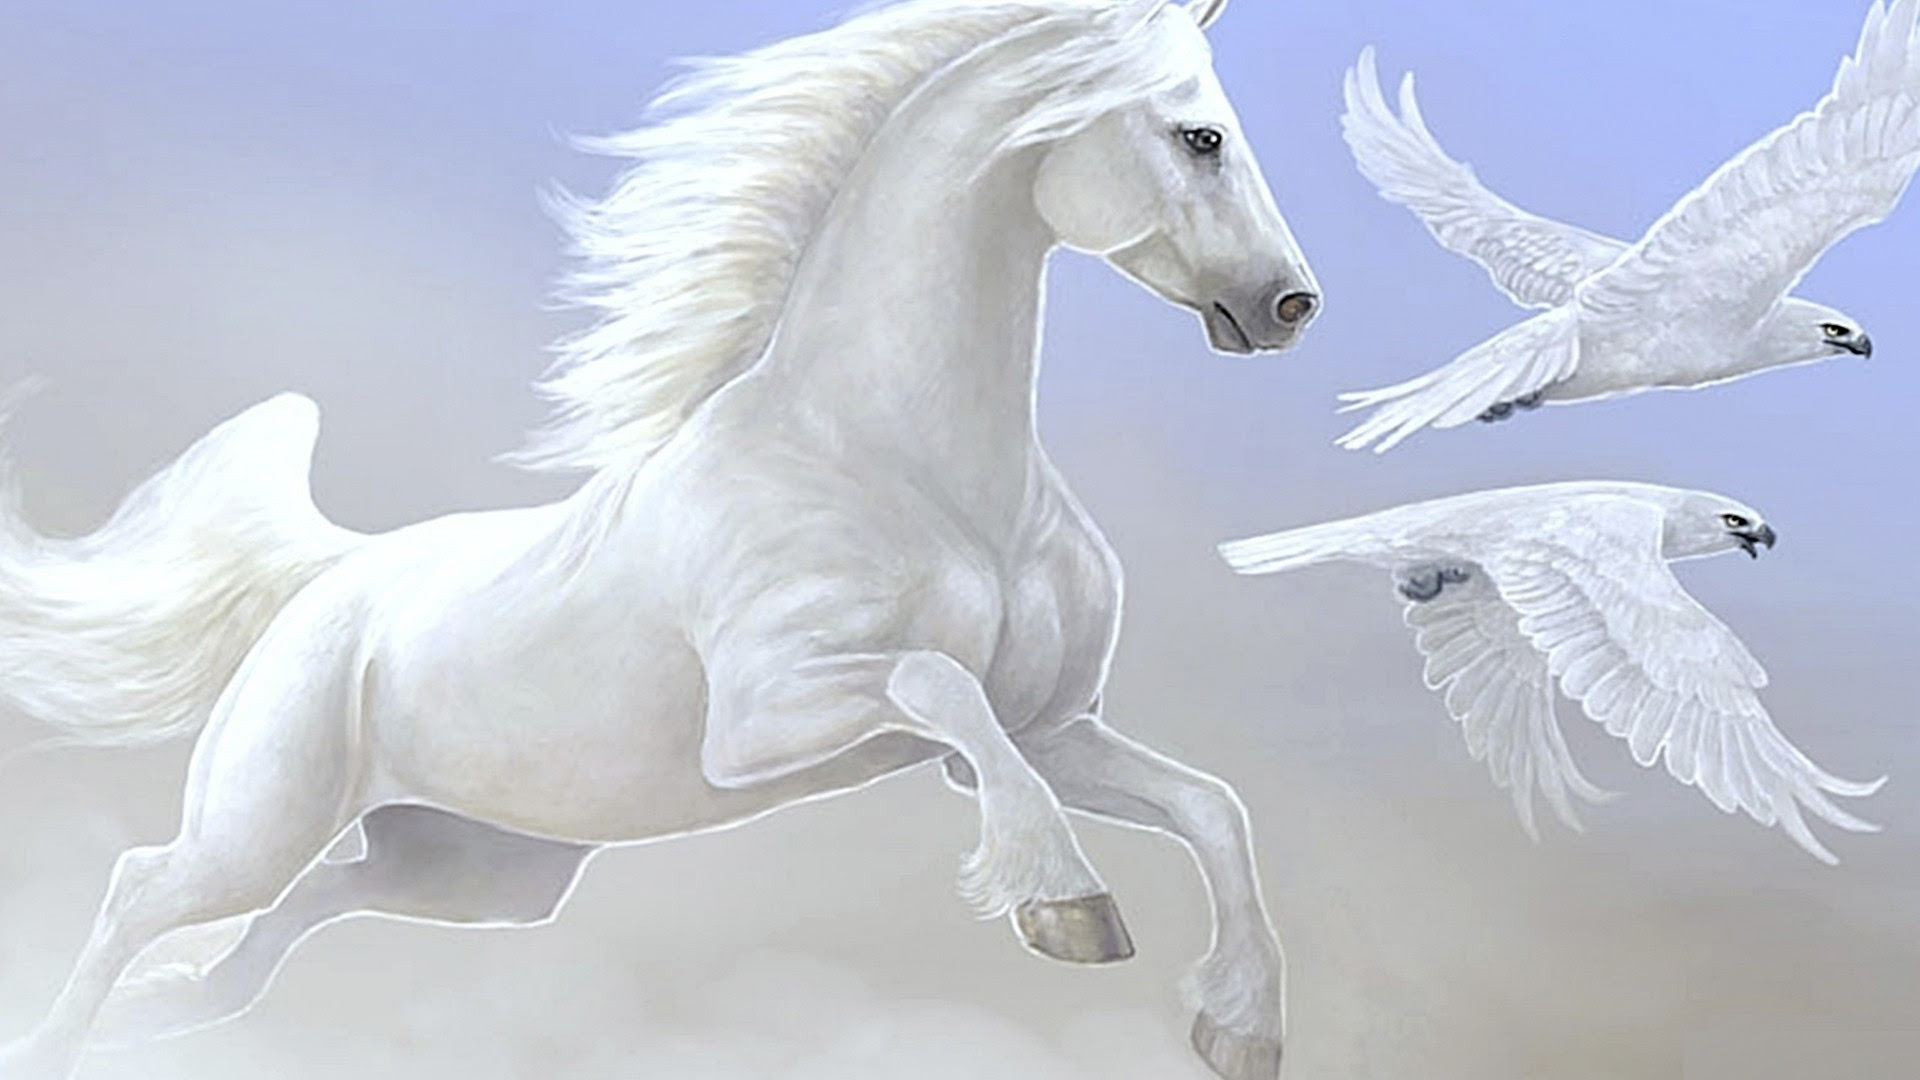 7 Horse Hd Wallpapers 1920x1080 Nosirix